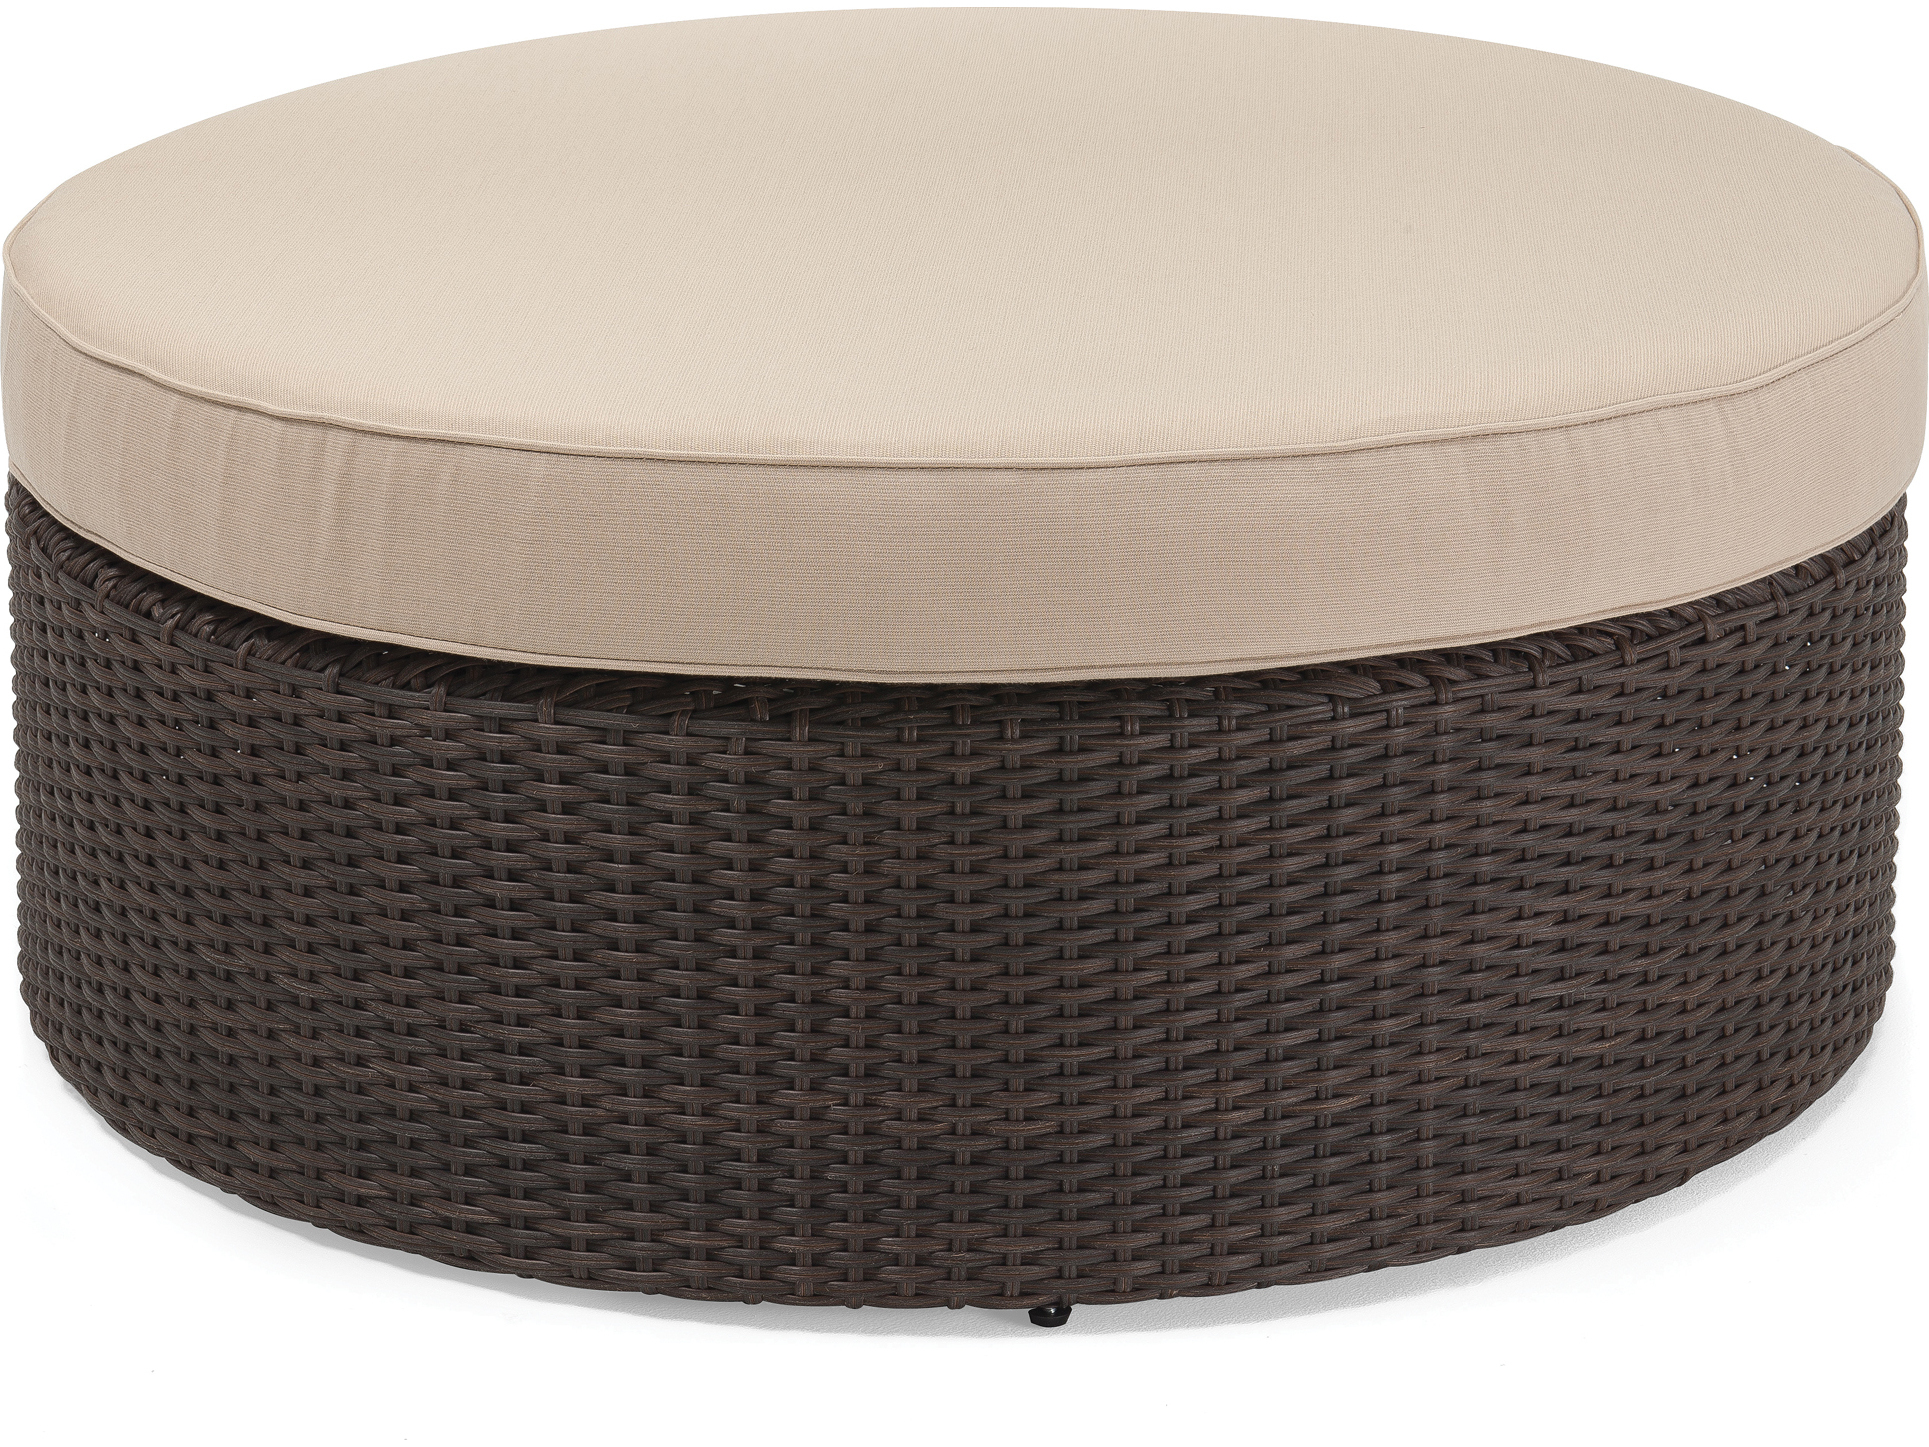 Winston Quick Ship Capri Woven Cushion Round Coffee Table Ottoman Hq155058